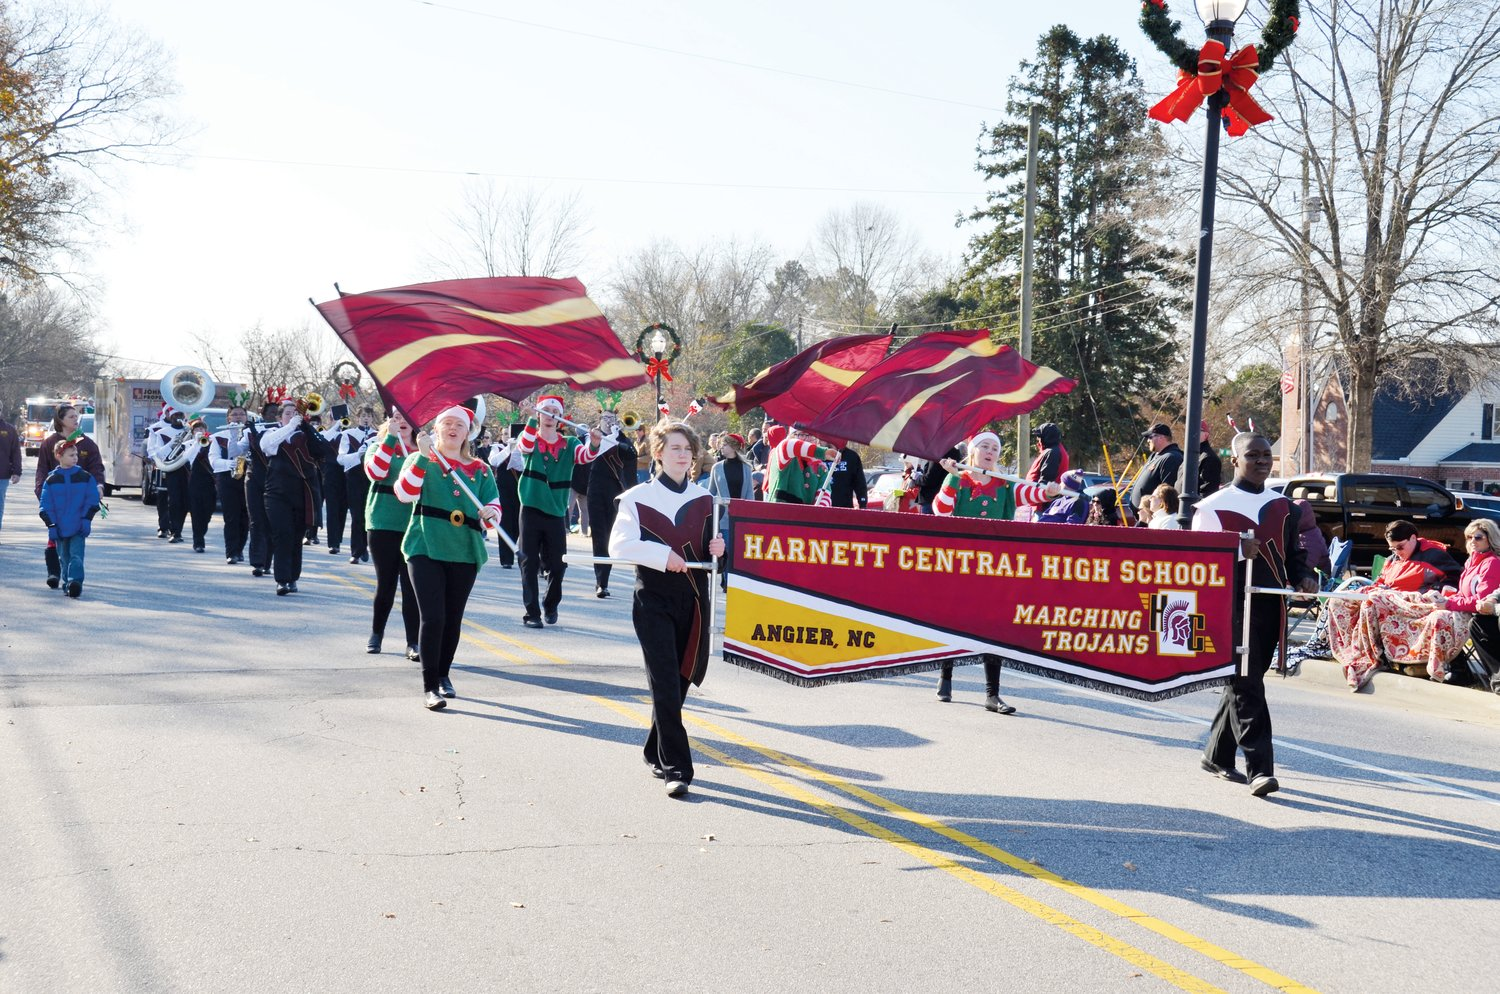 The Harnett Central Marching Trojans make their way down Broad Street in the Angier Christmas Parade Saturday. One of the largest crowds in recent memory came out for the event.